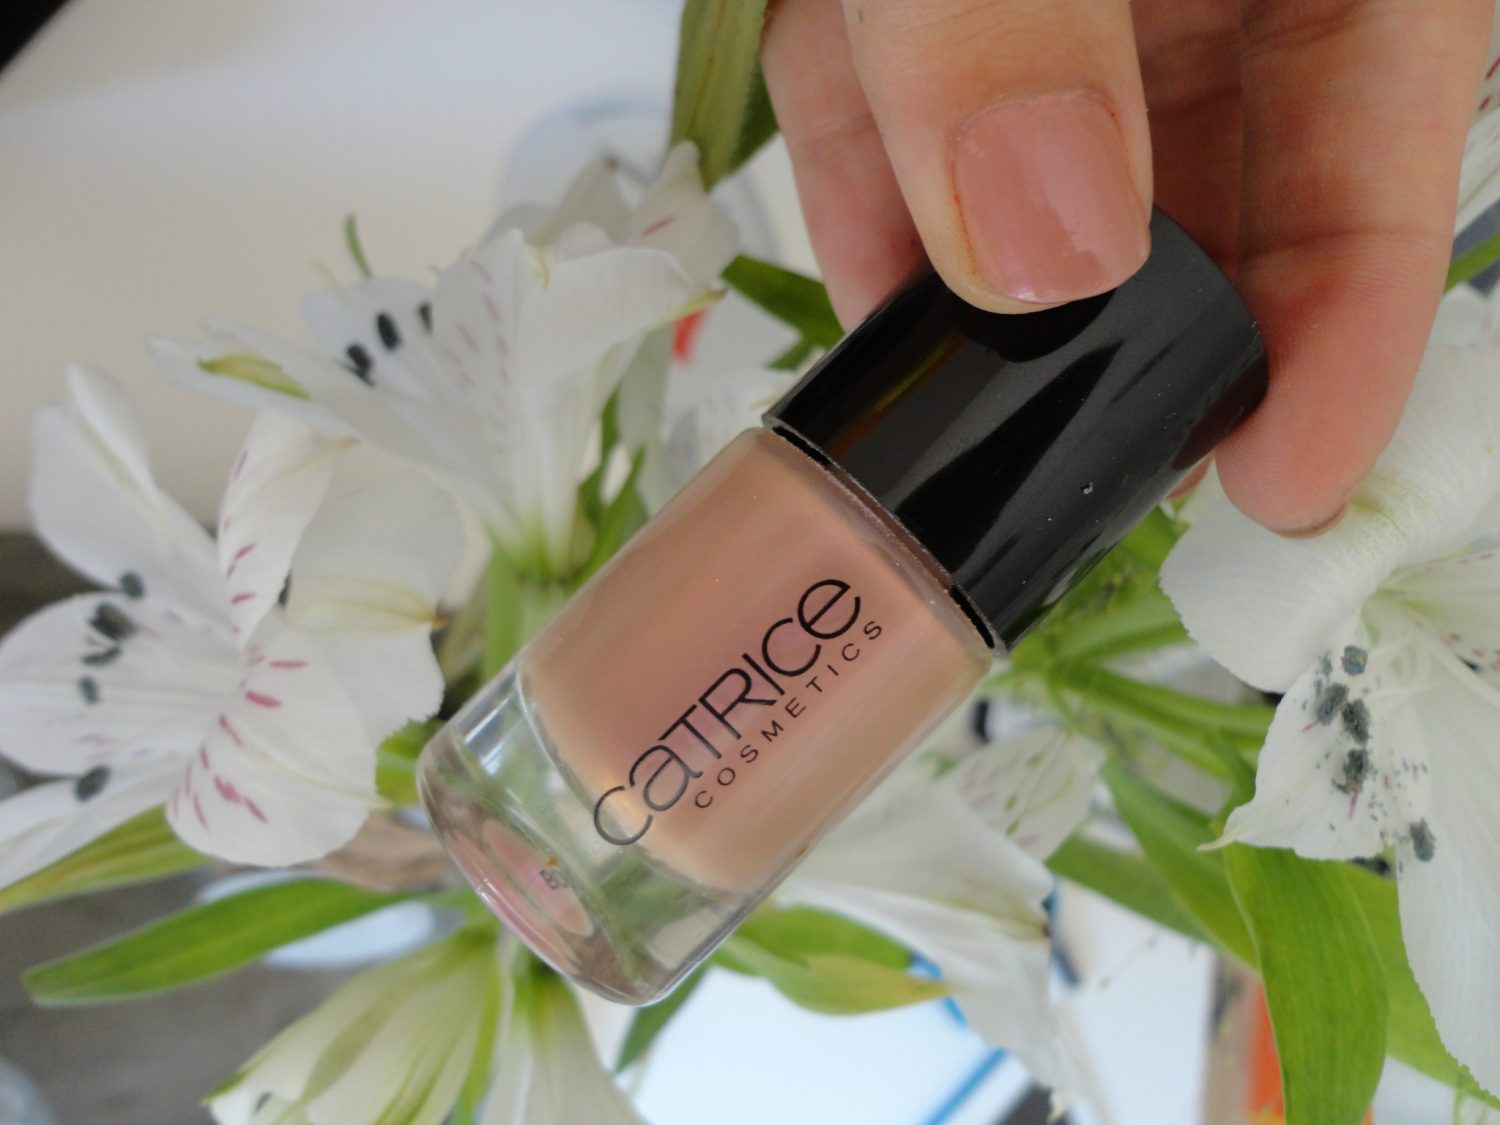 Swatch: Catrice # 37 The Effect Maker